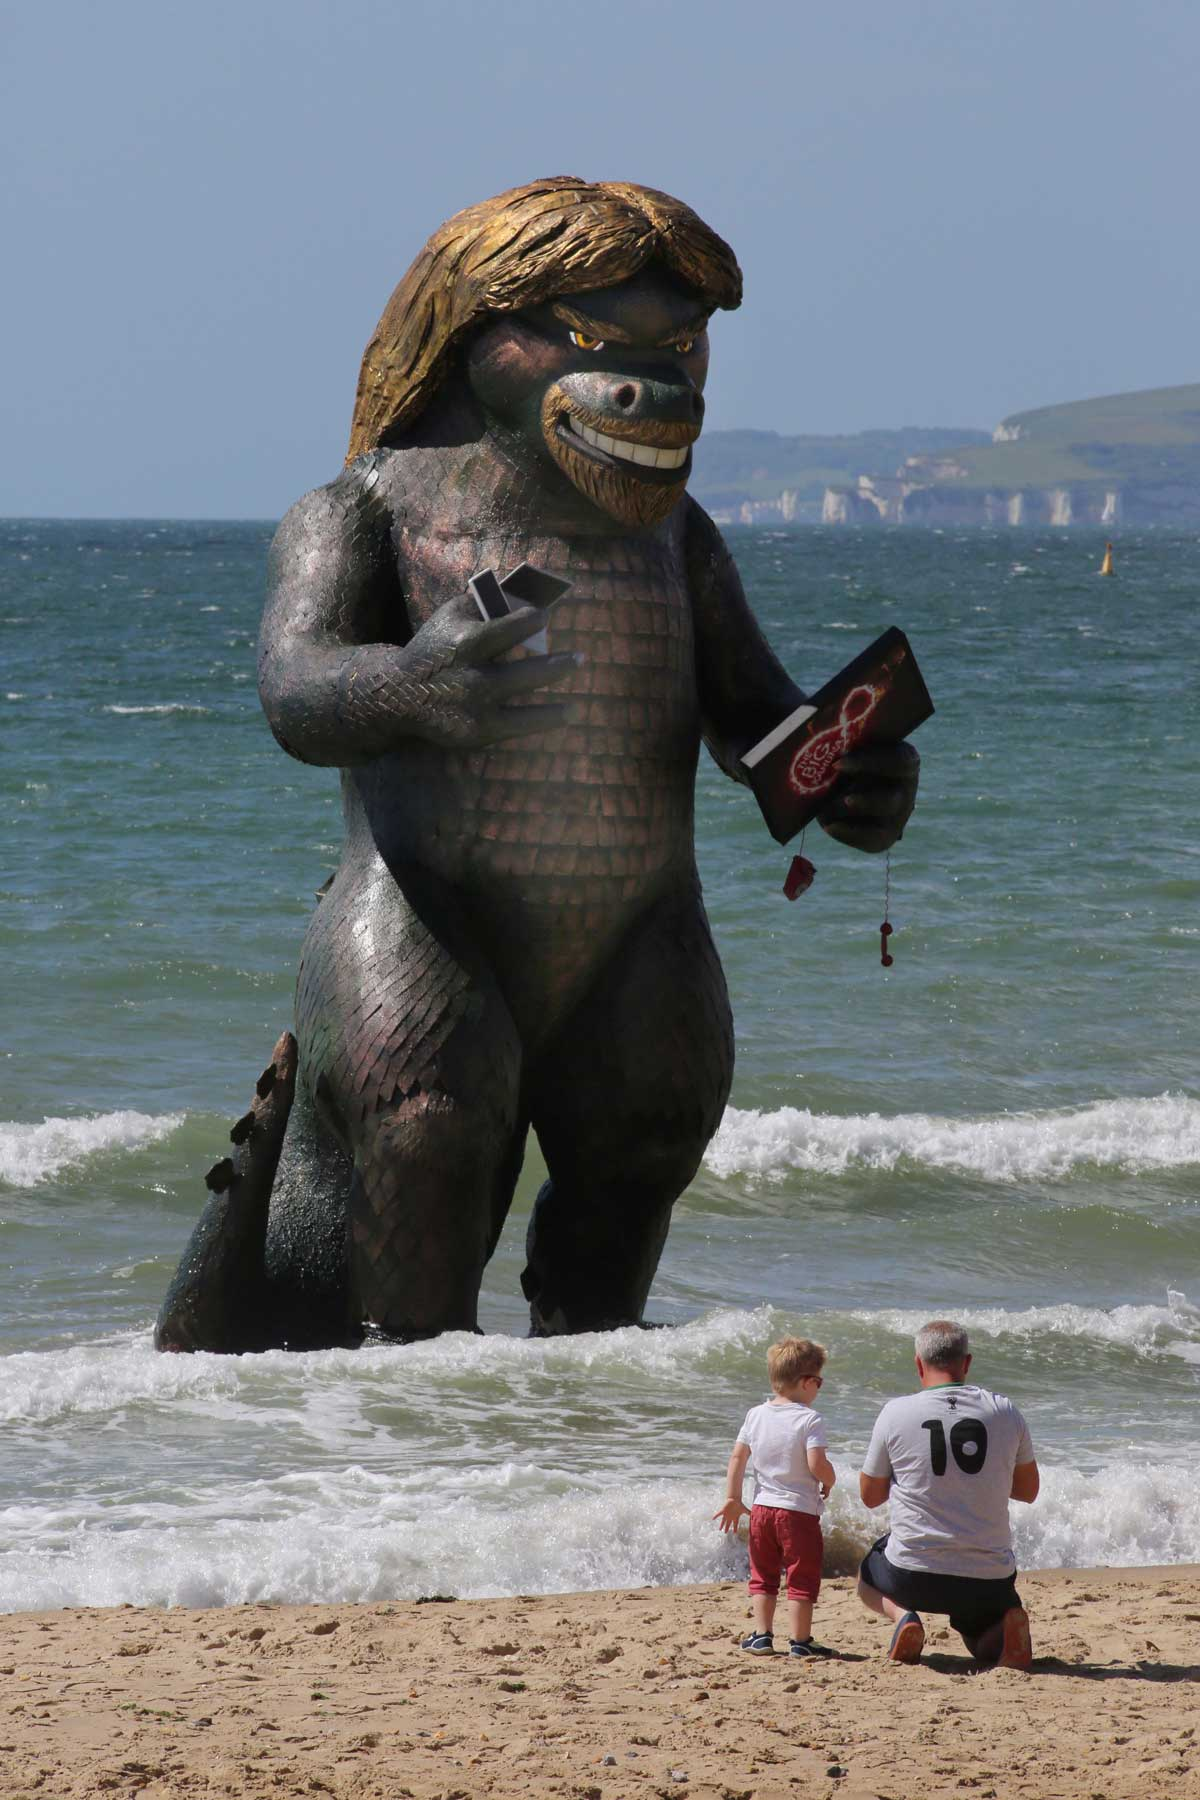 VIDEO: 'Monster' in the sea at Bournemouth causes a stir - send us your pictures